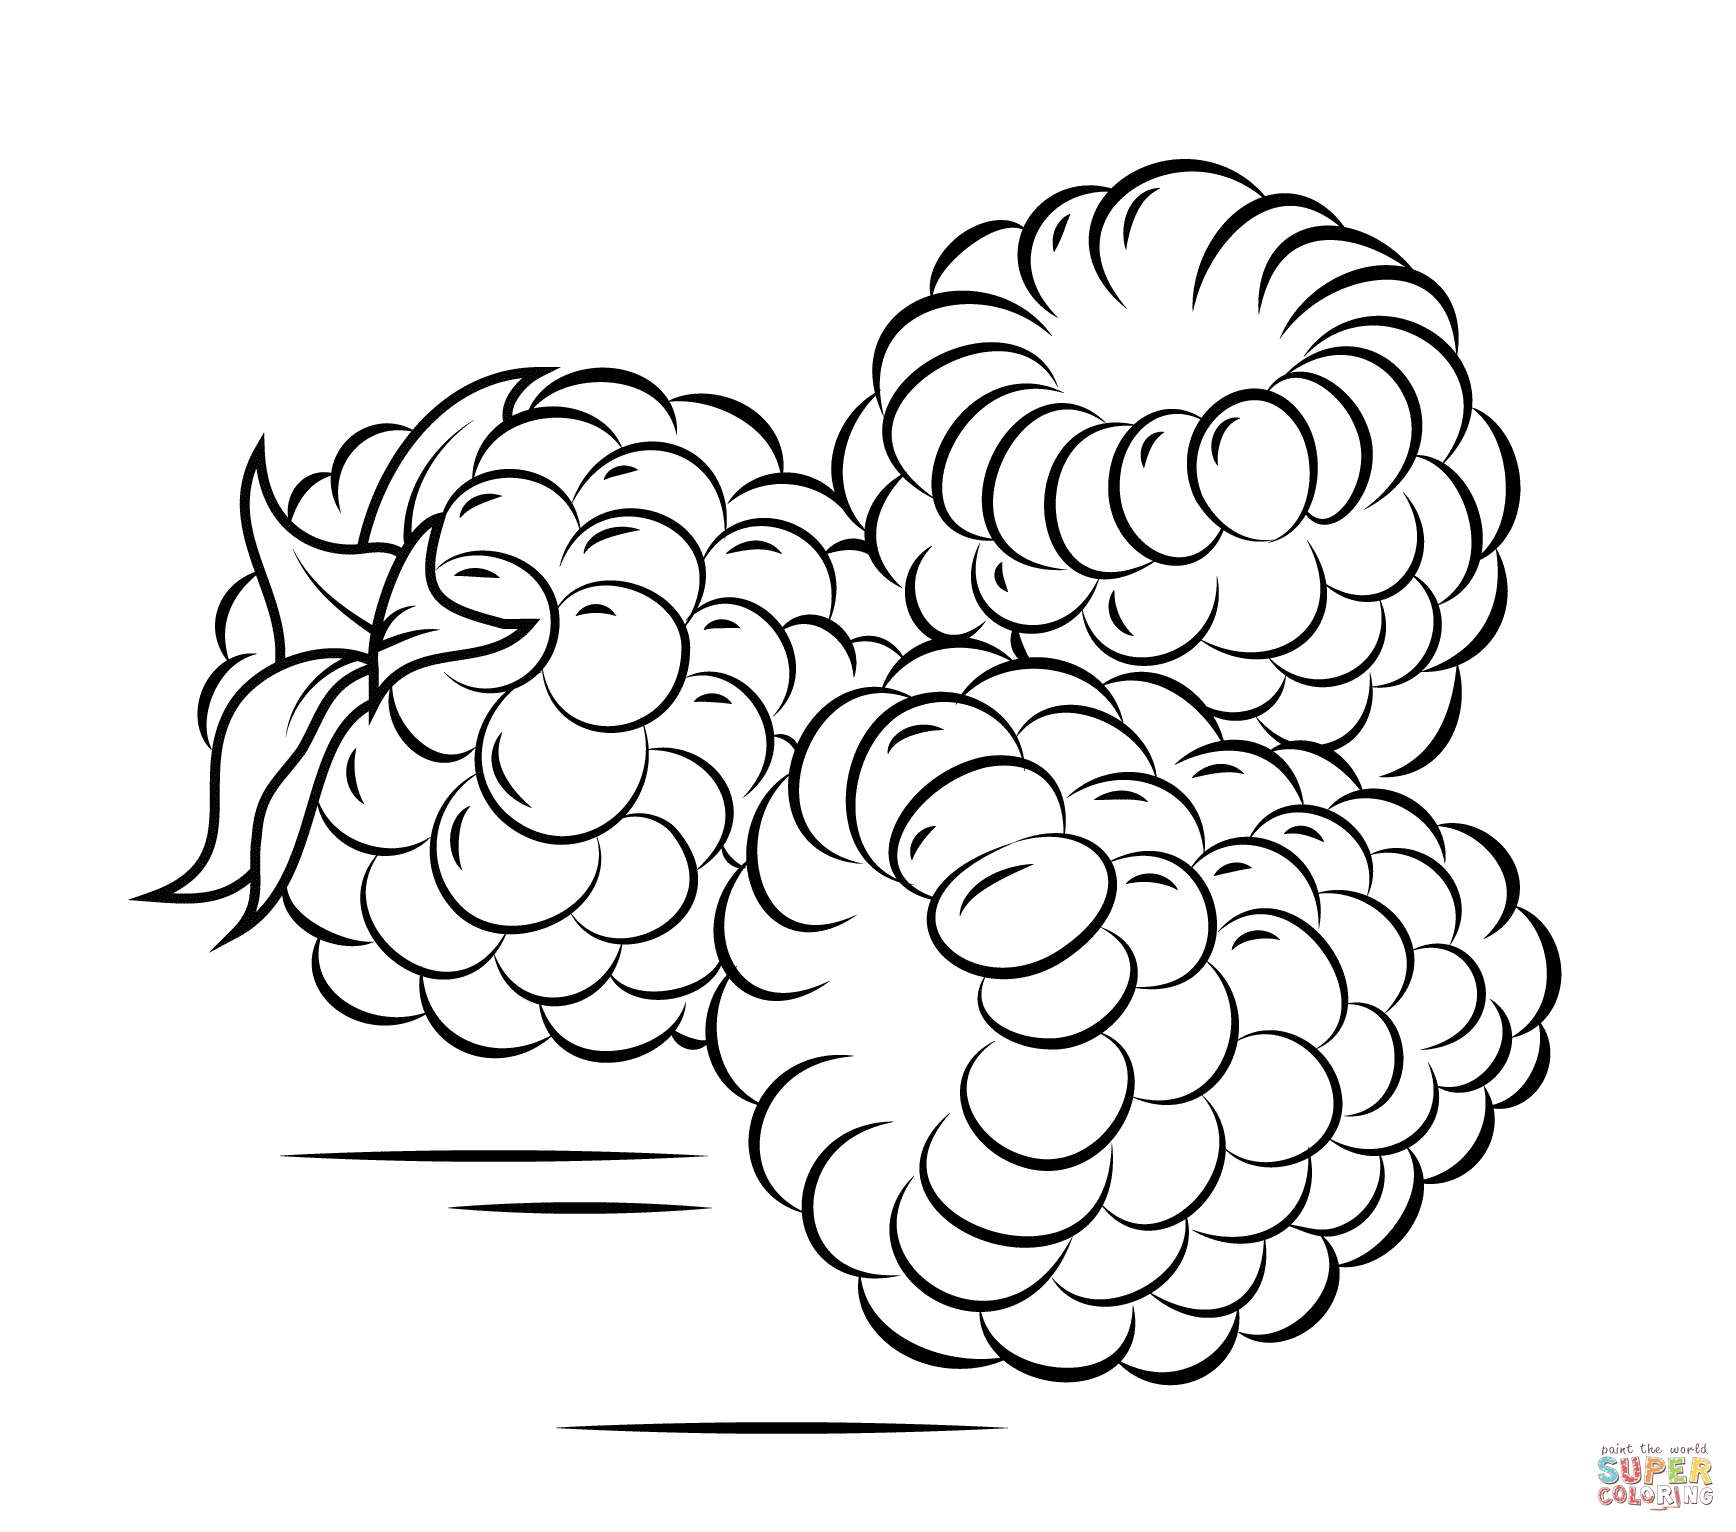 1736x1532 Fresh Raspberries Coloring Pages Design Printable Coloring Sheet